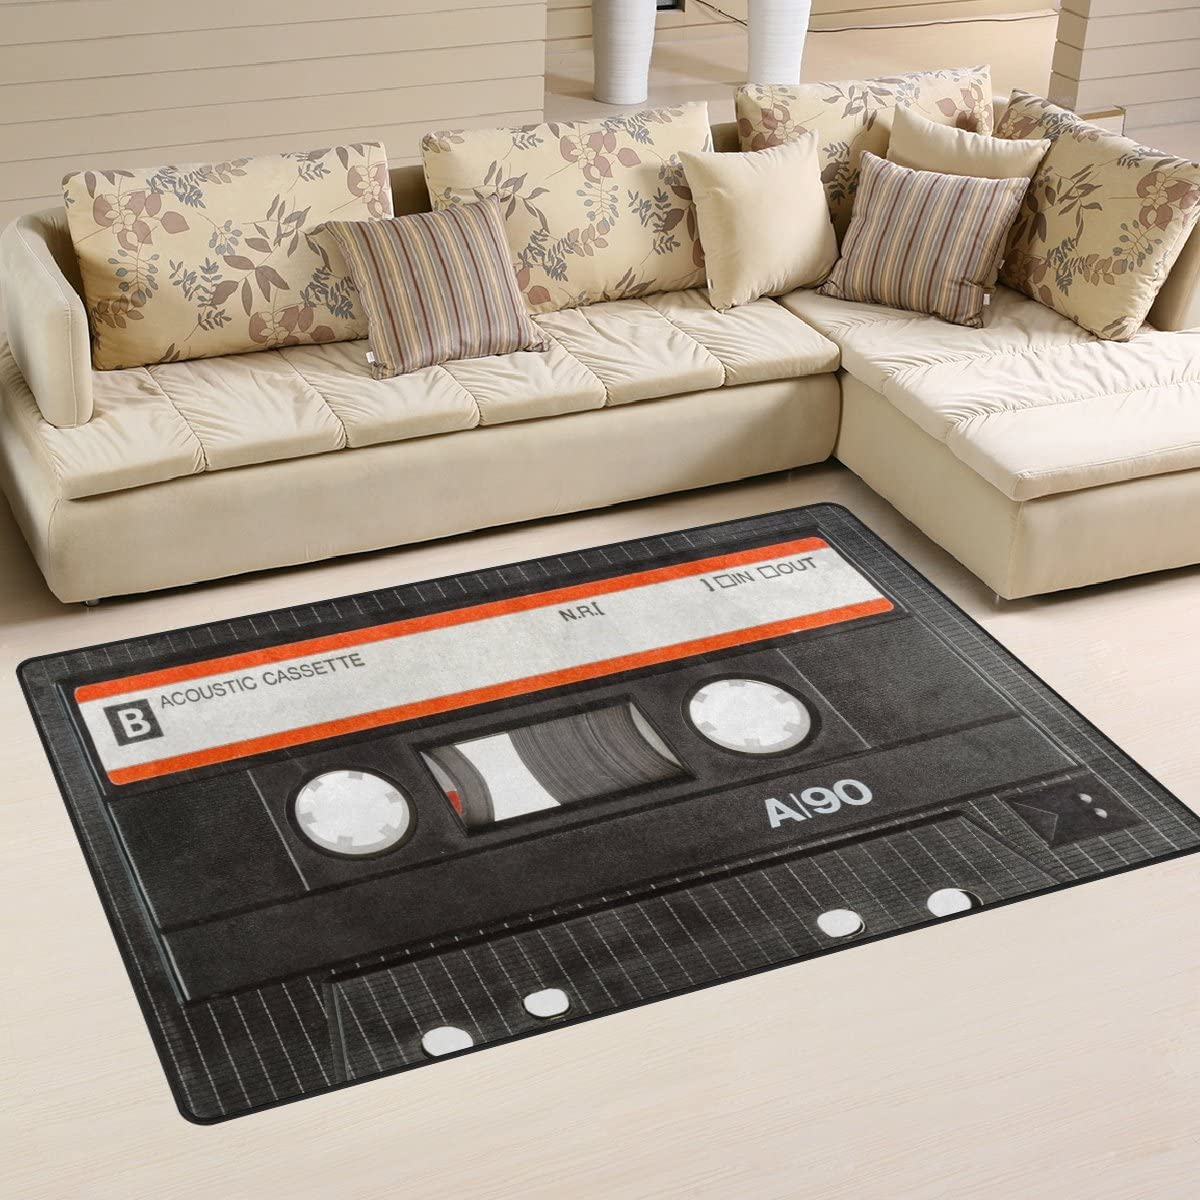 ALAZA Old Cassette Tape Area Rug Rugs Room Ranking TOP20 Carpet Fees free!! for Bed Living